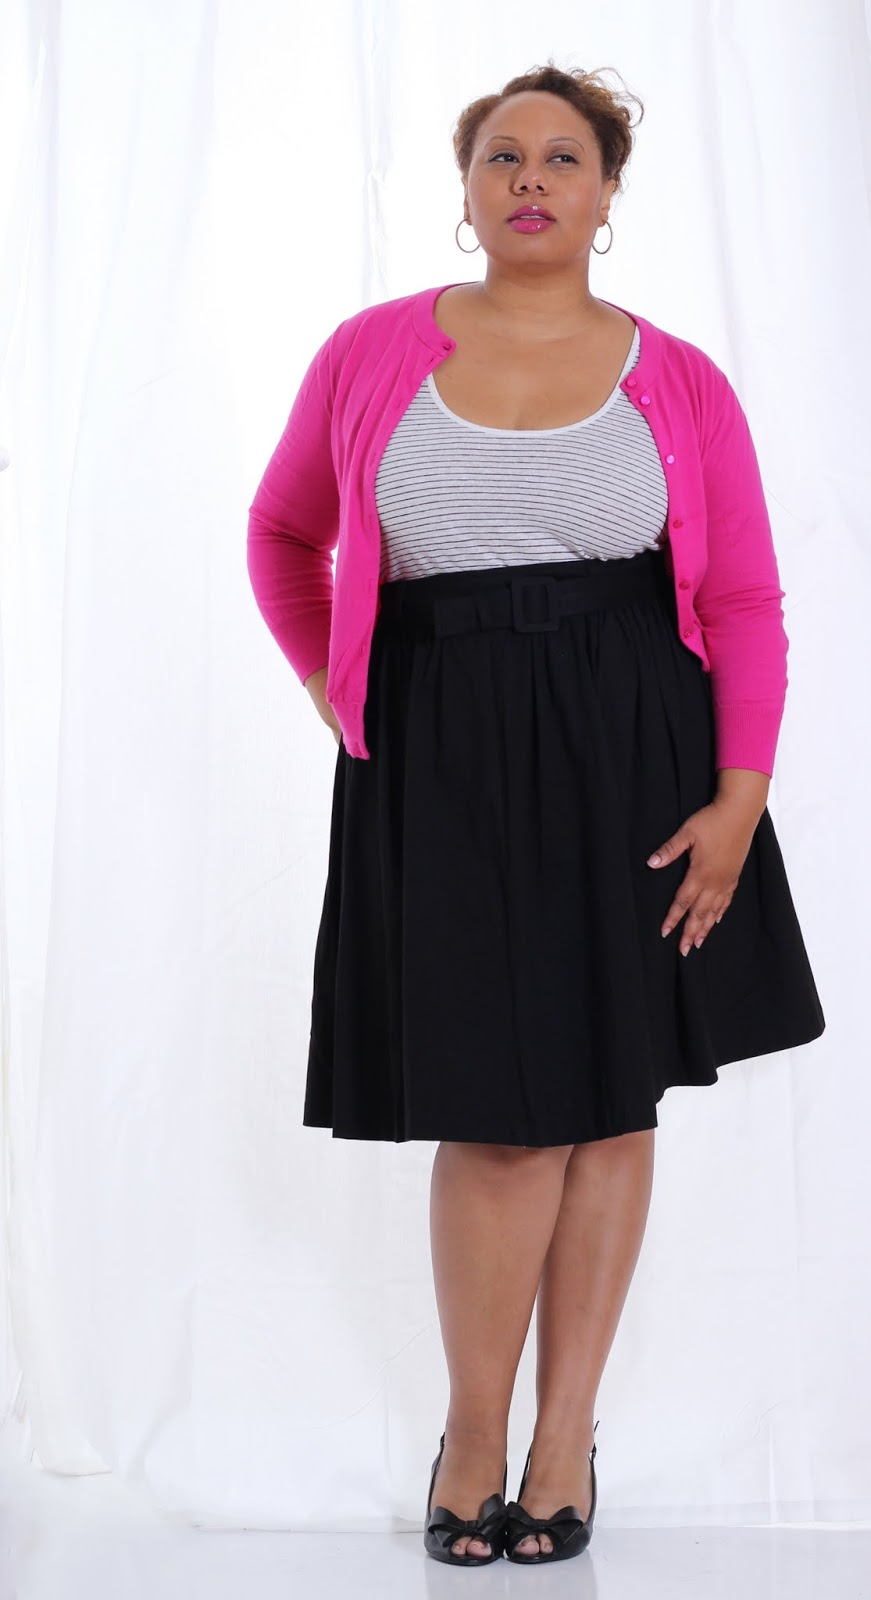 http://www.petitecareergirl.com/2015/09/pink-black-and-stripes.html